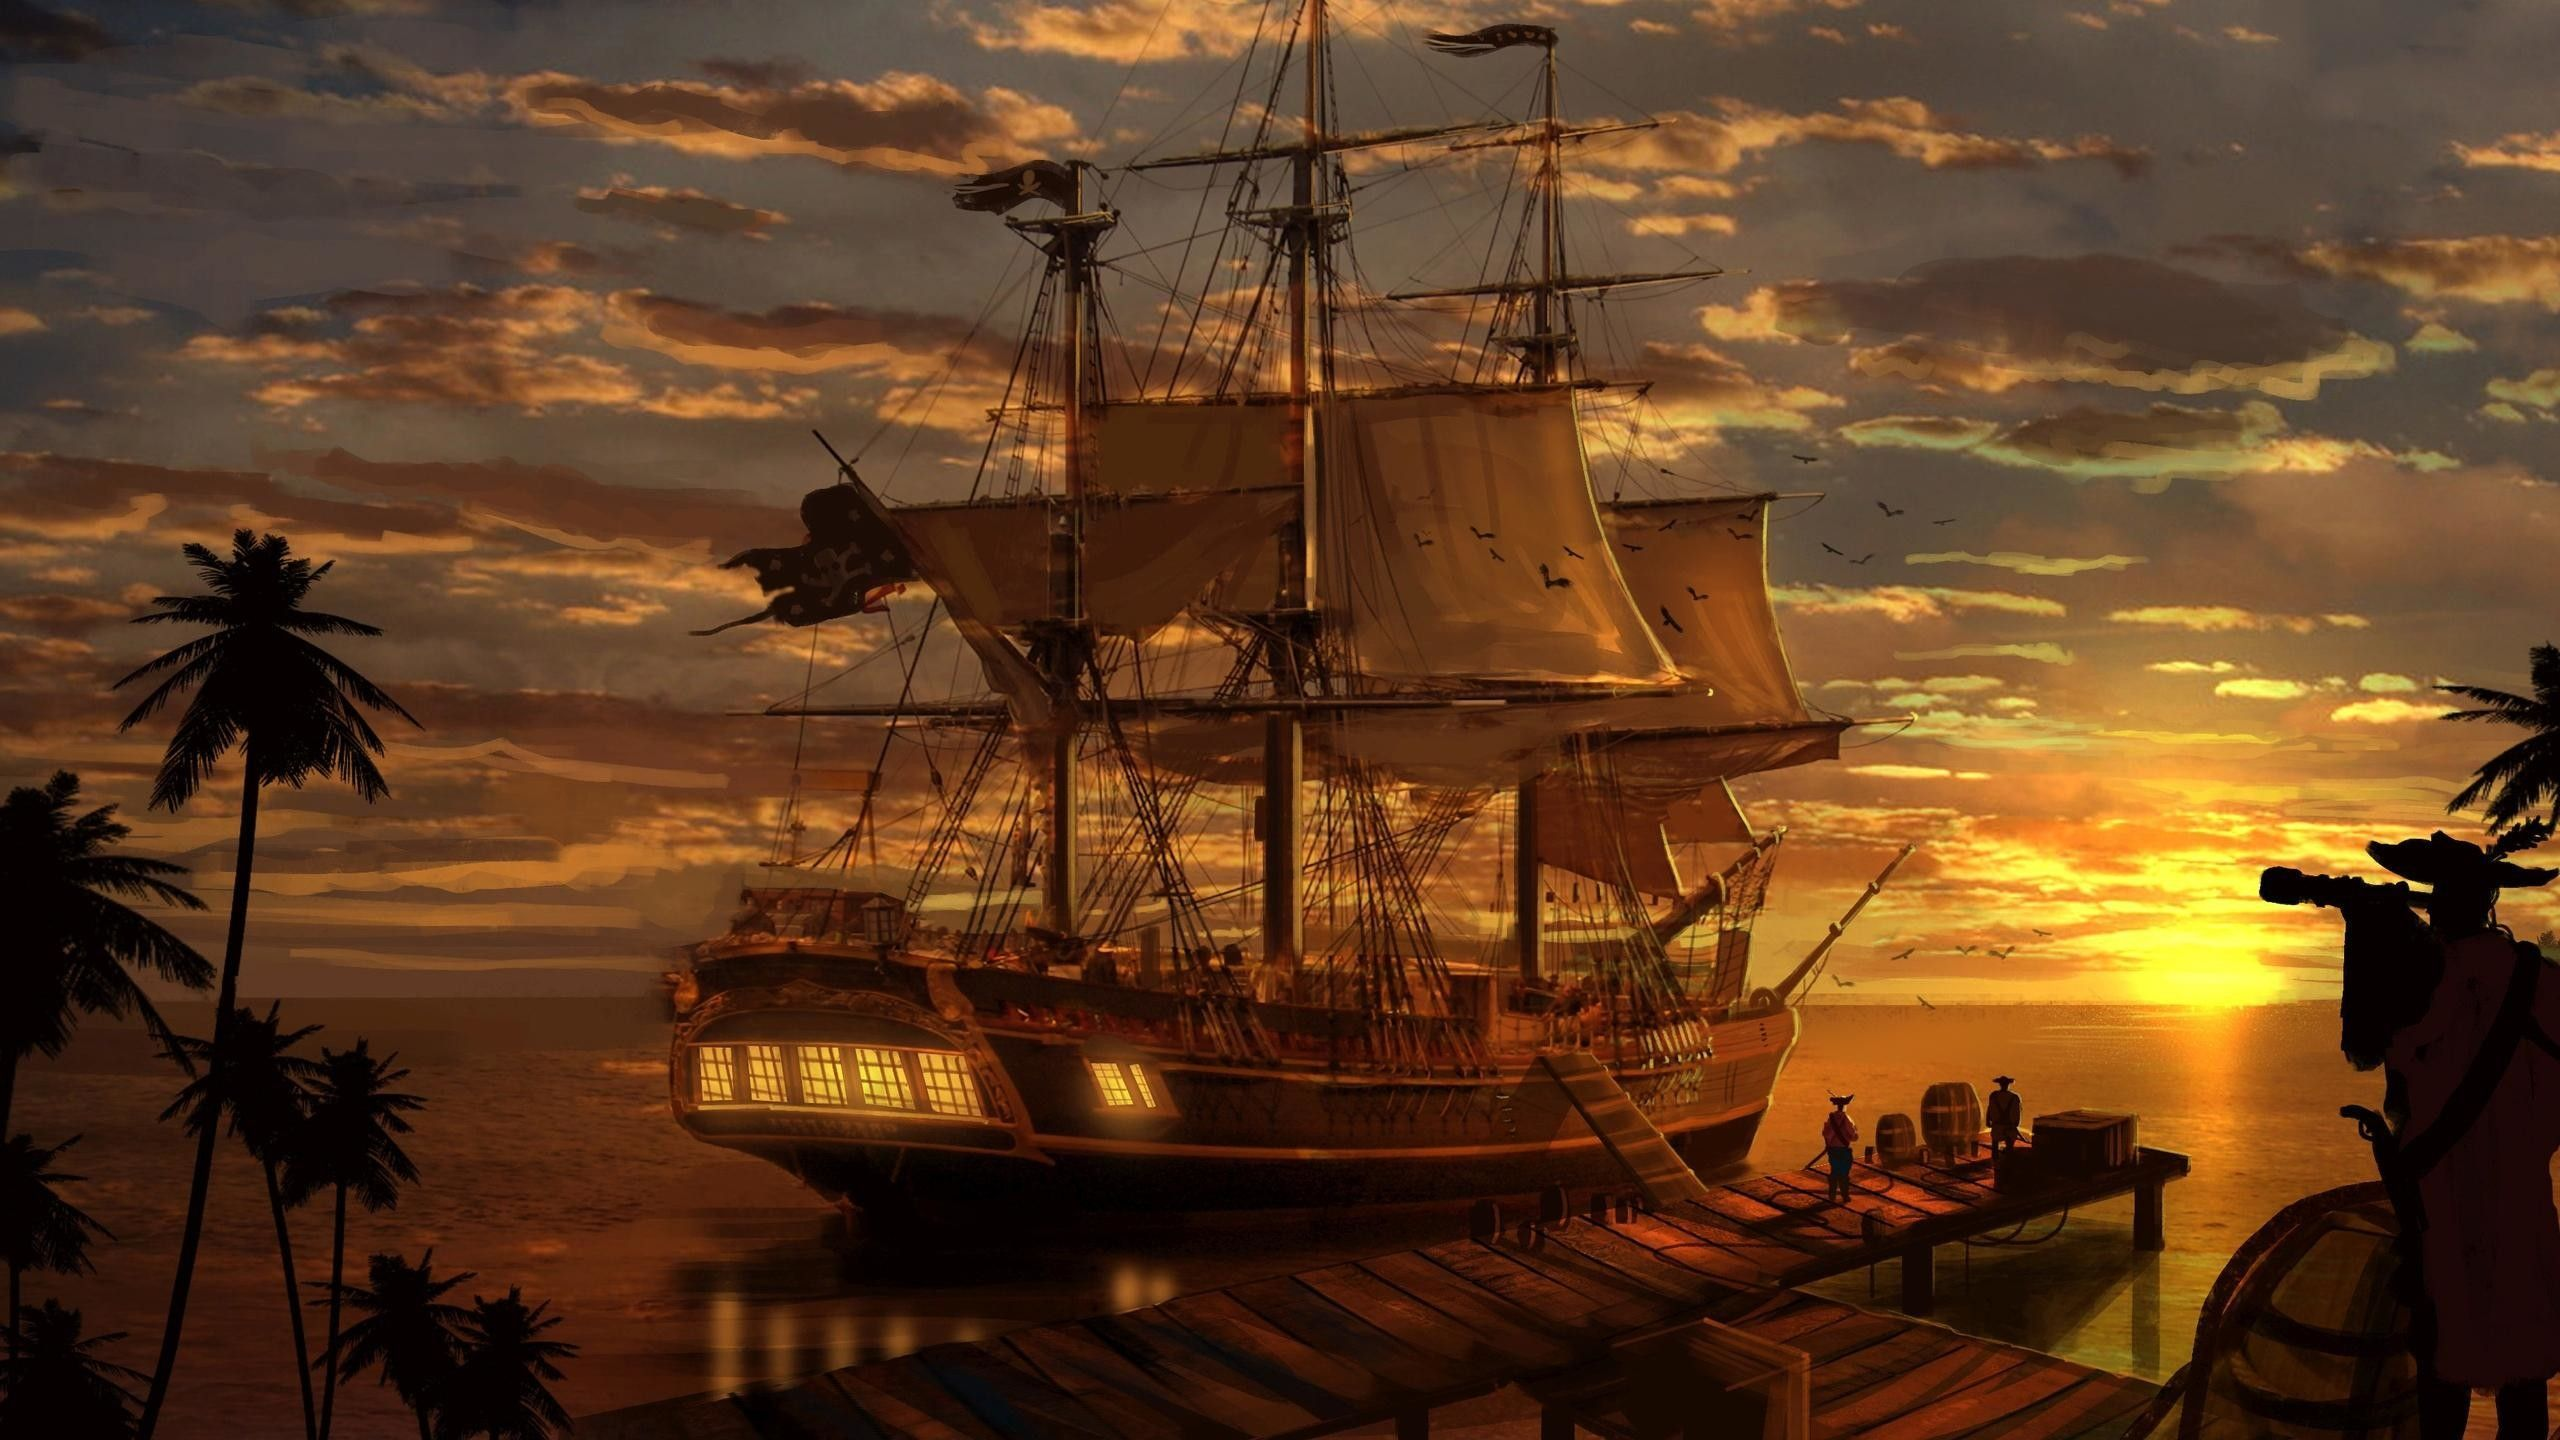 ship wallpaper hd